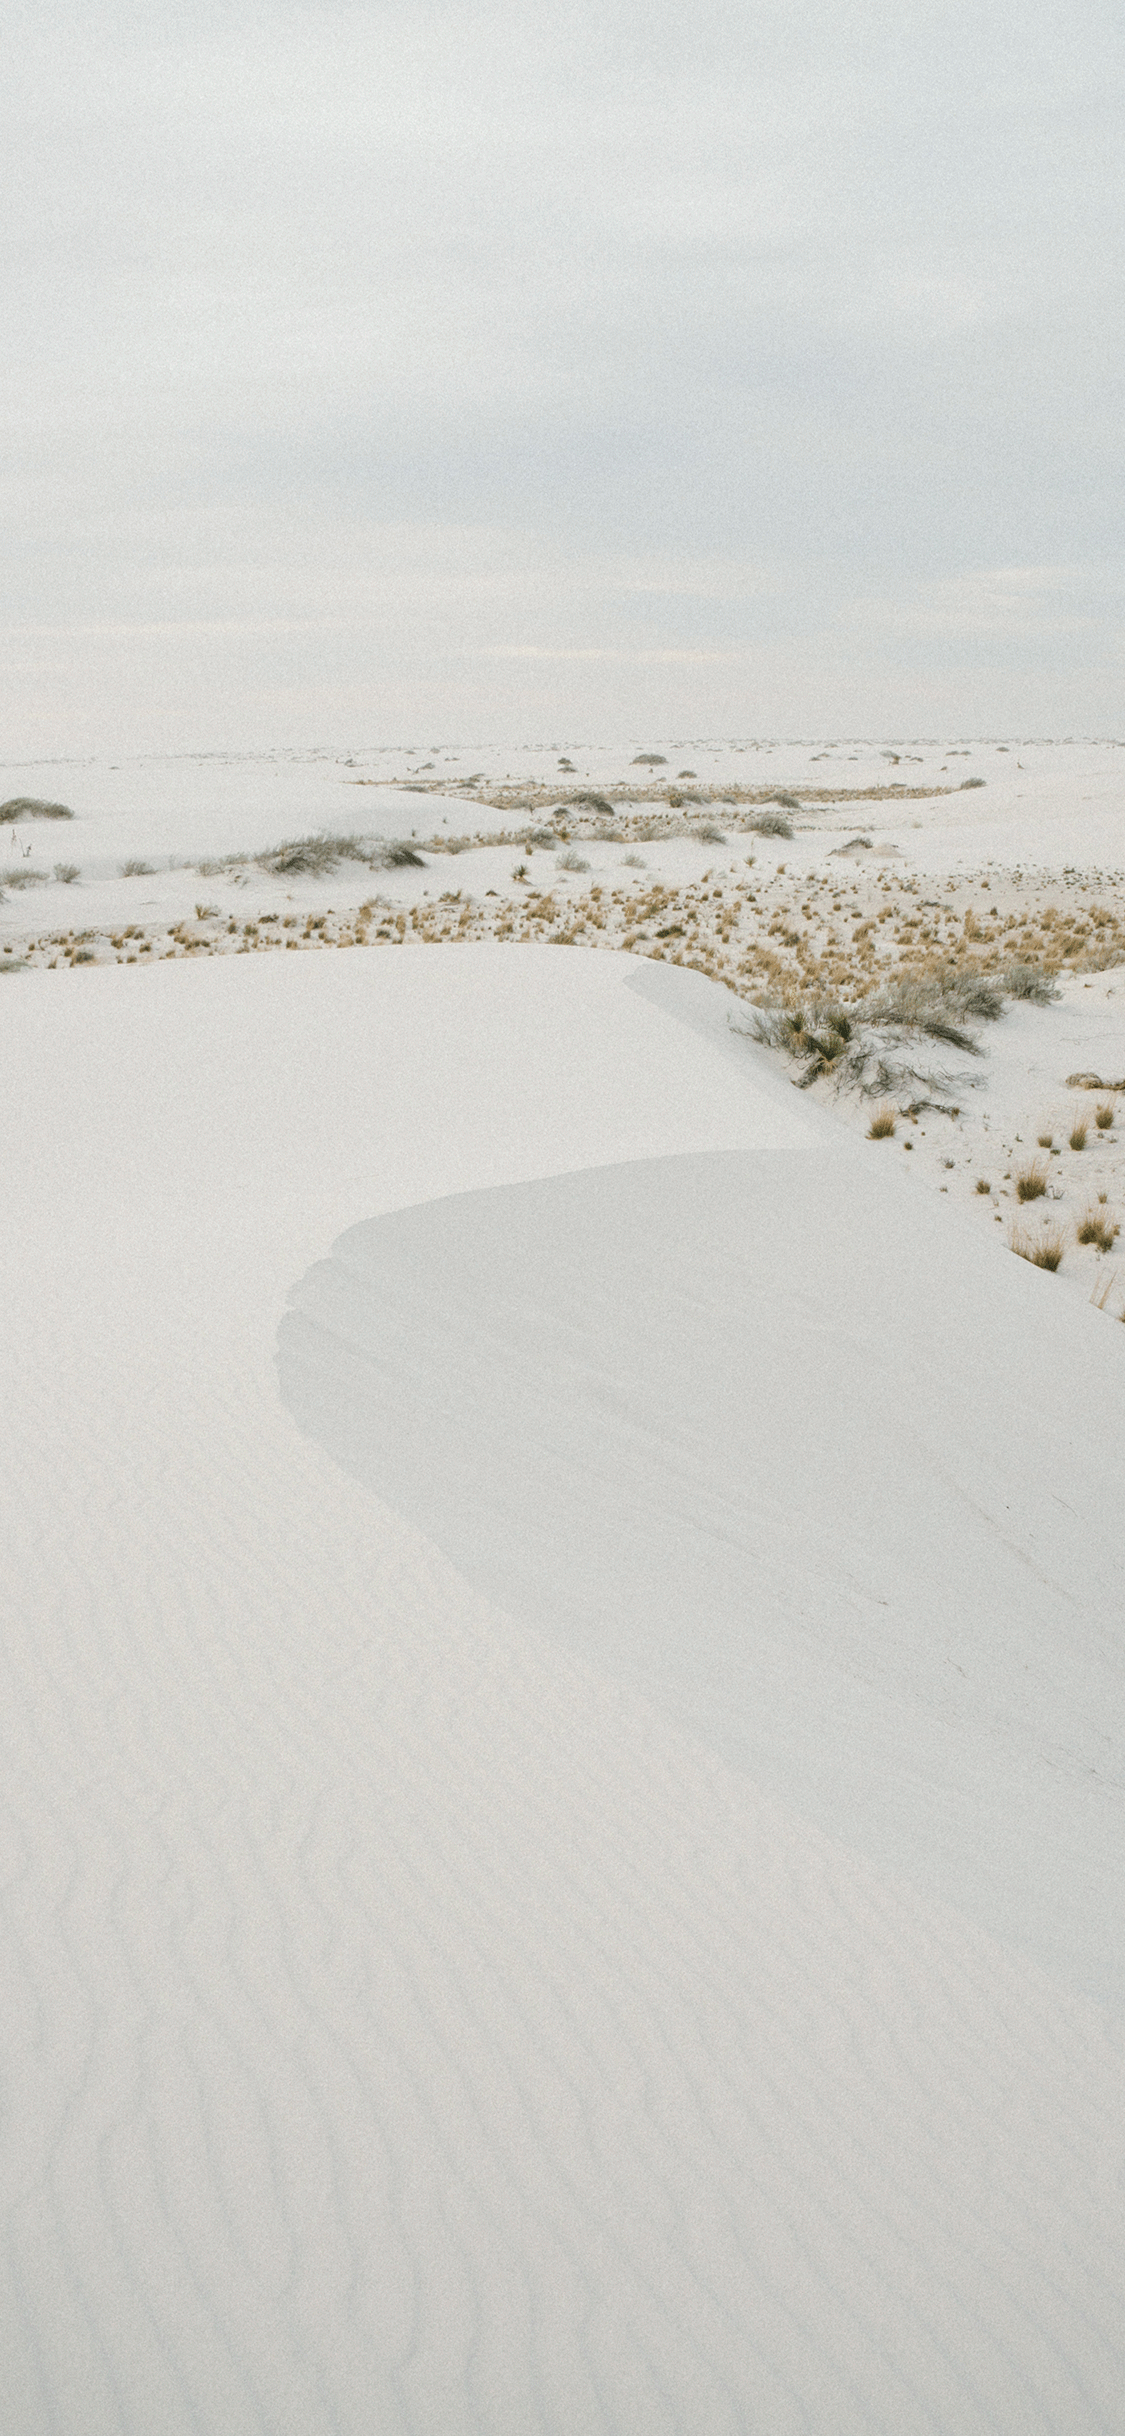 iPhone wallpaper desert white sands Desert